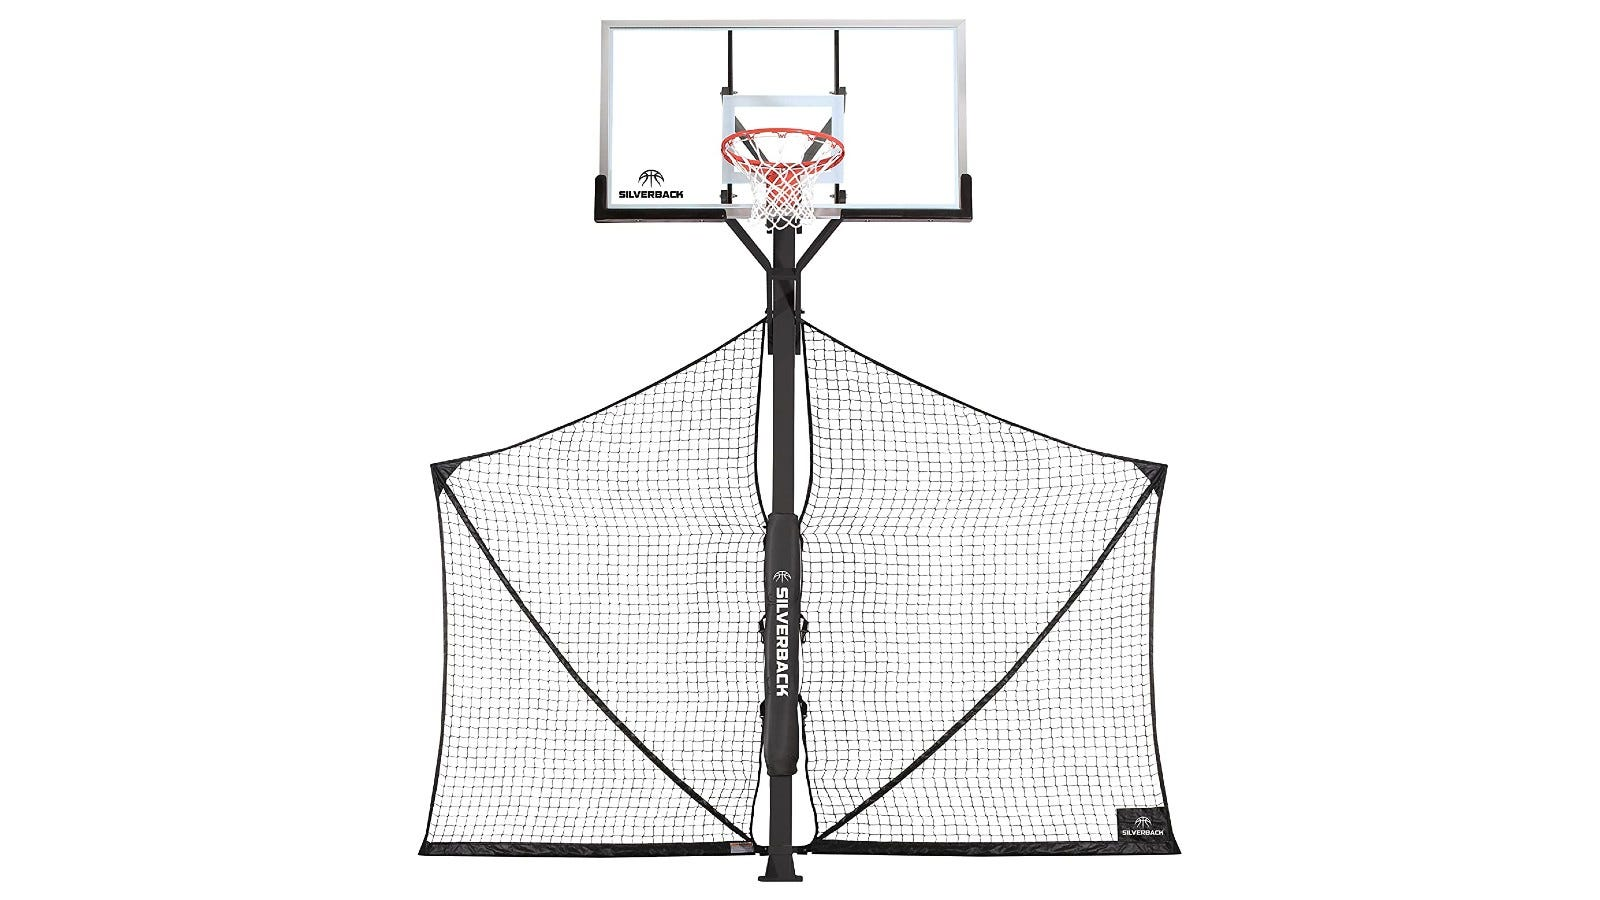 A basketball rebounder with a white and black net attached to the pole.